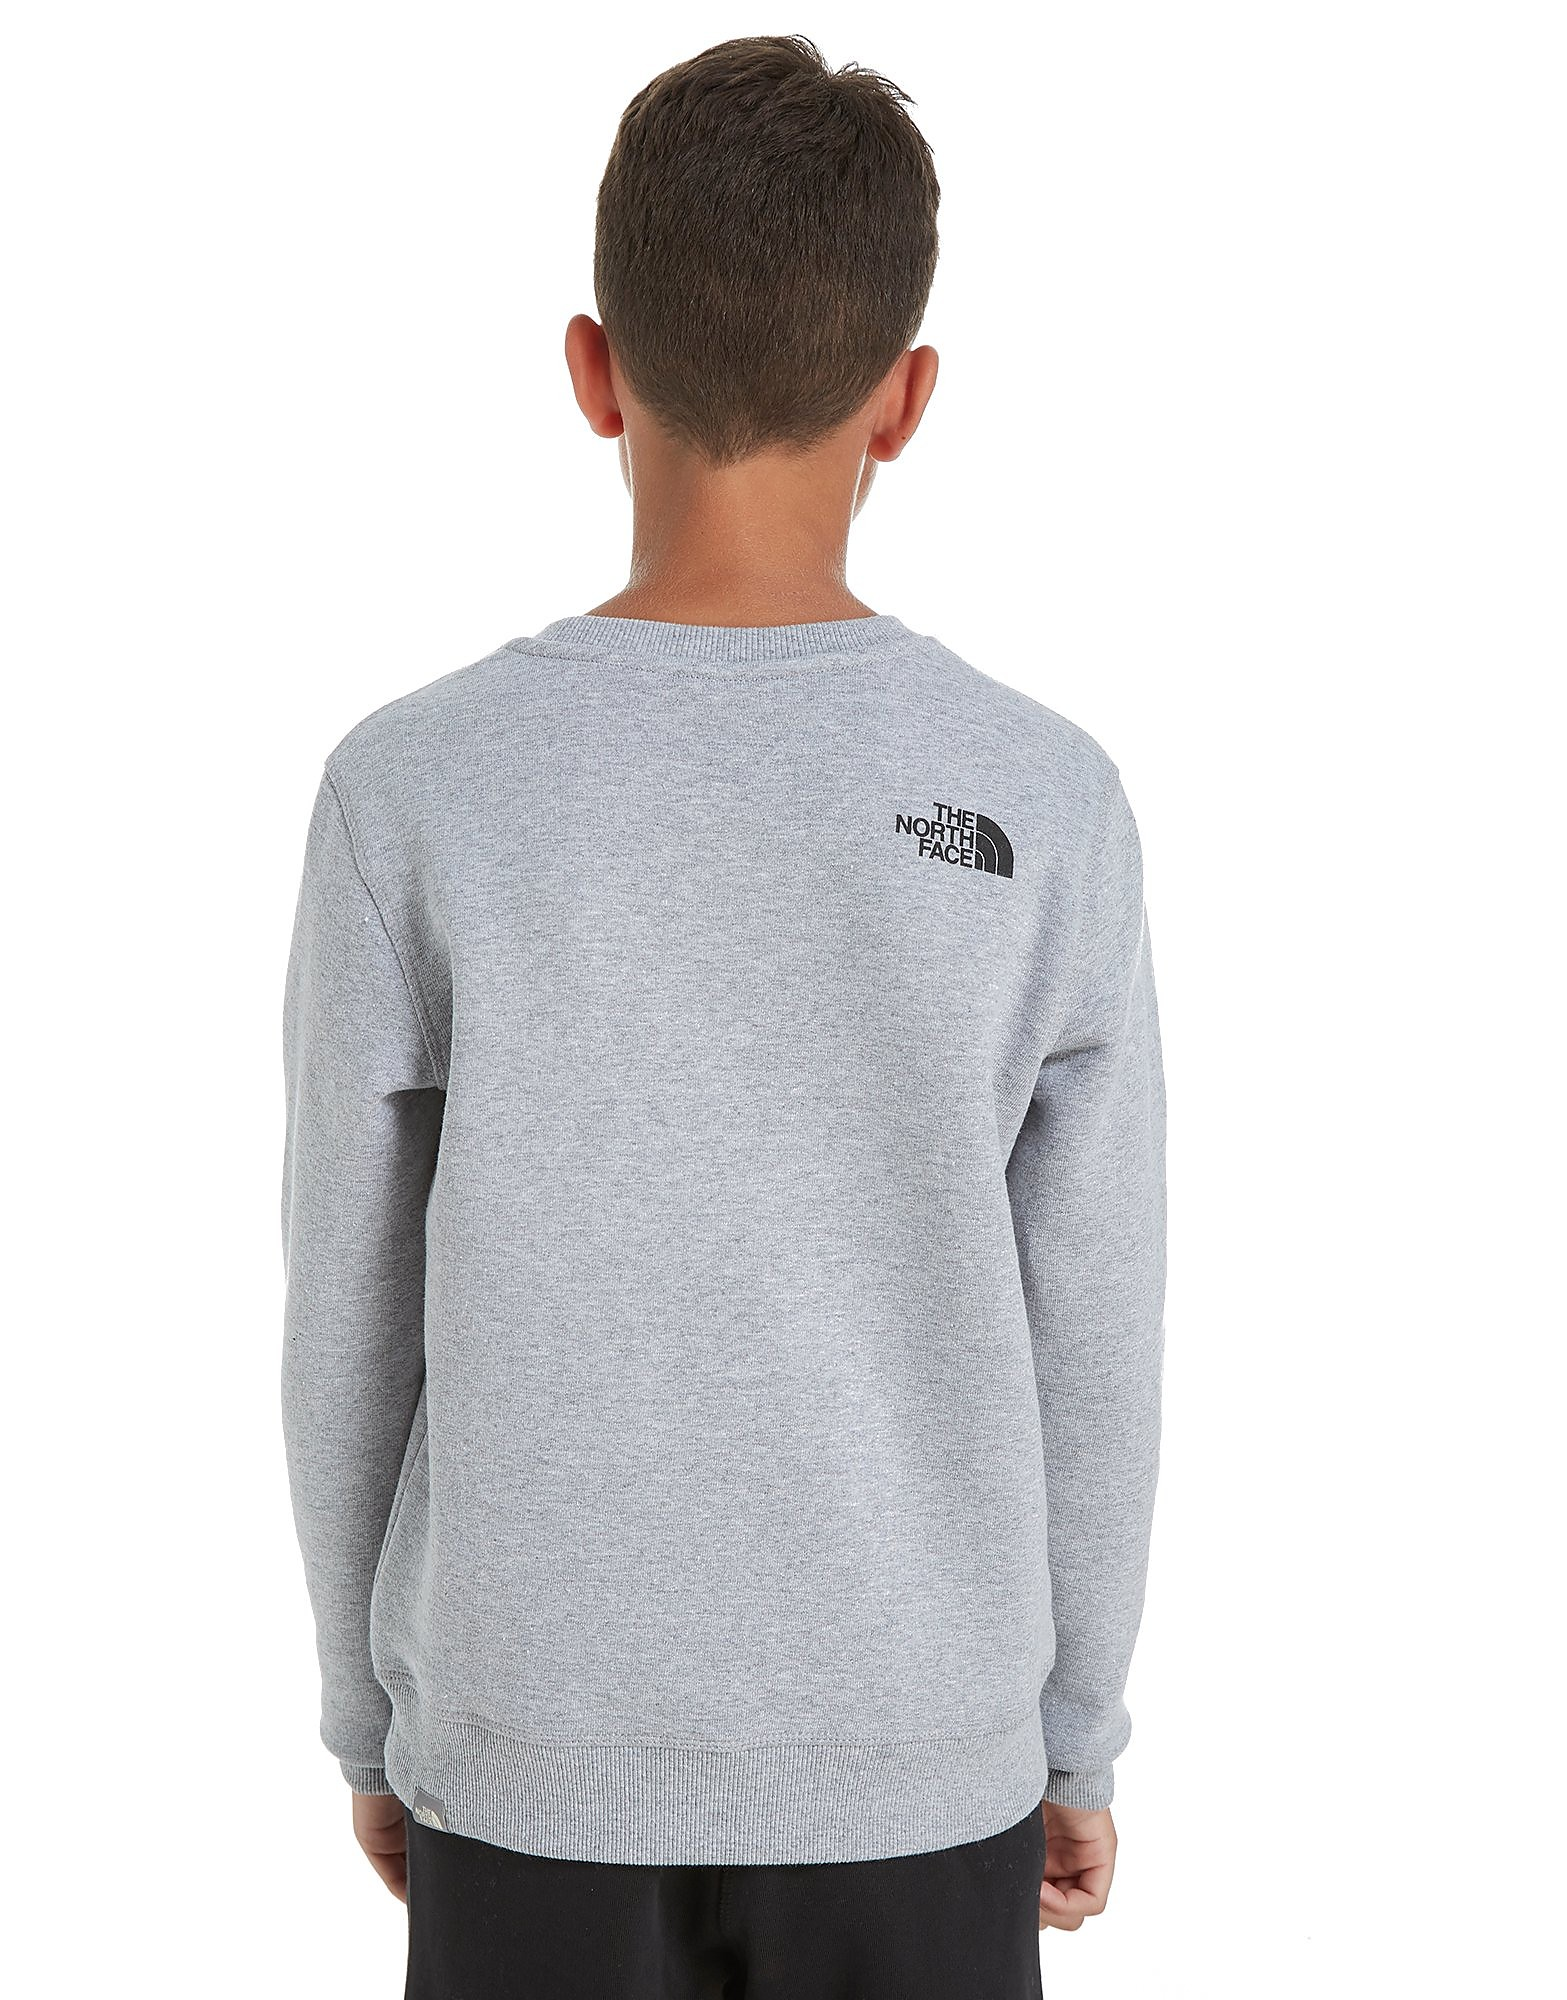 The North Face Boy's Box Crew Sweatshirt